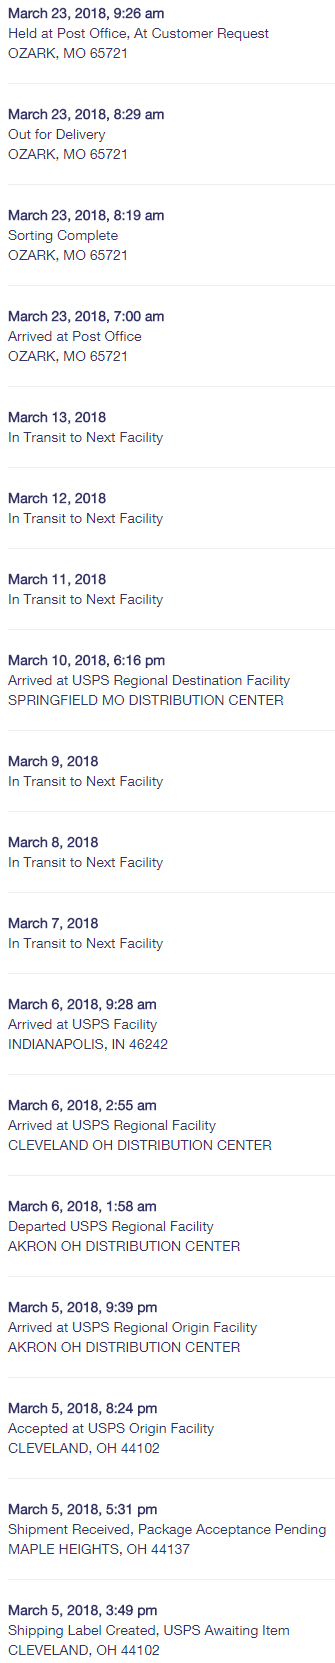 When the USPS says, 'Item currently in transit to the destination', what  does that mean, exactly? - Quora